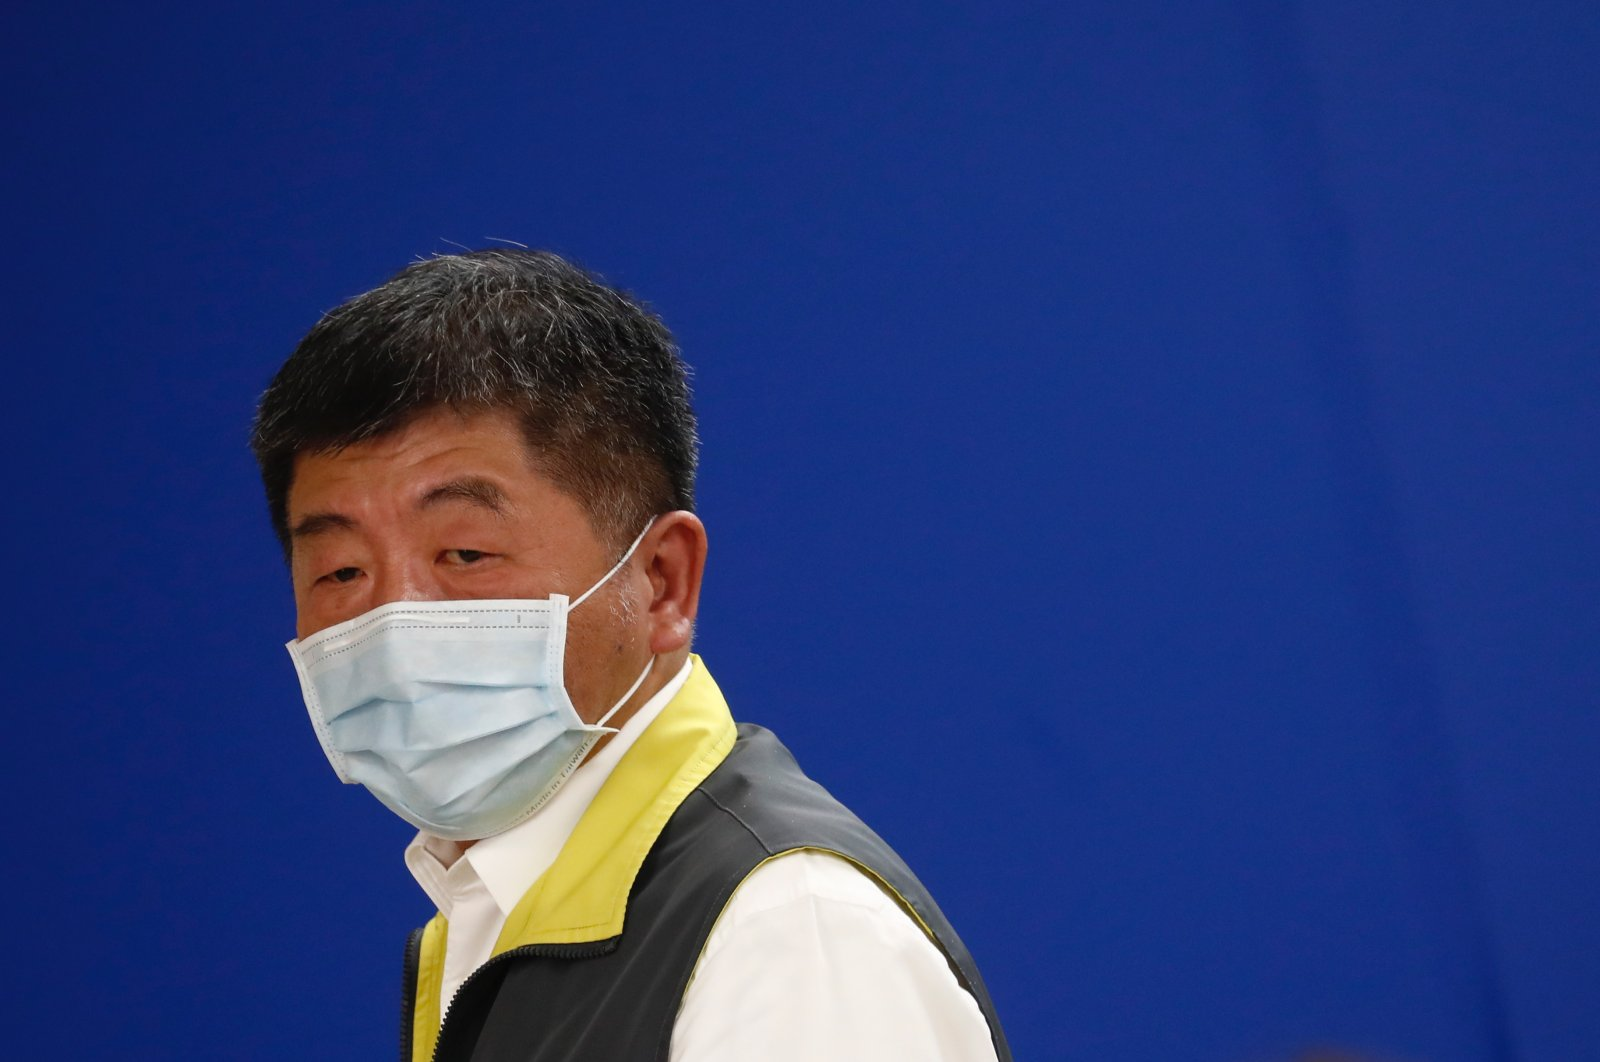 Taiwan Minister of Health and Welfare Chen Shih-Chung leaves after speaking during a press briefing with foreign journalists about the current measures and status in the fight against coronavirus and COVID-19 in Taipei, Taiwan, May 6, 2020. (EPA Photo)